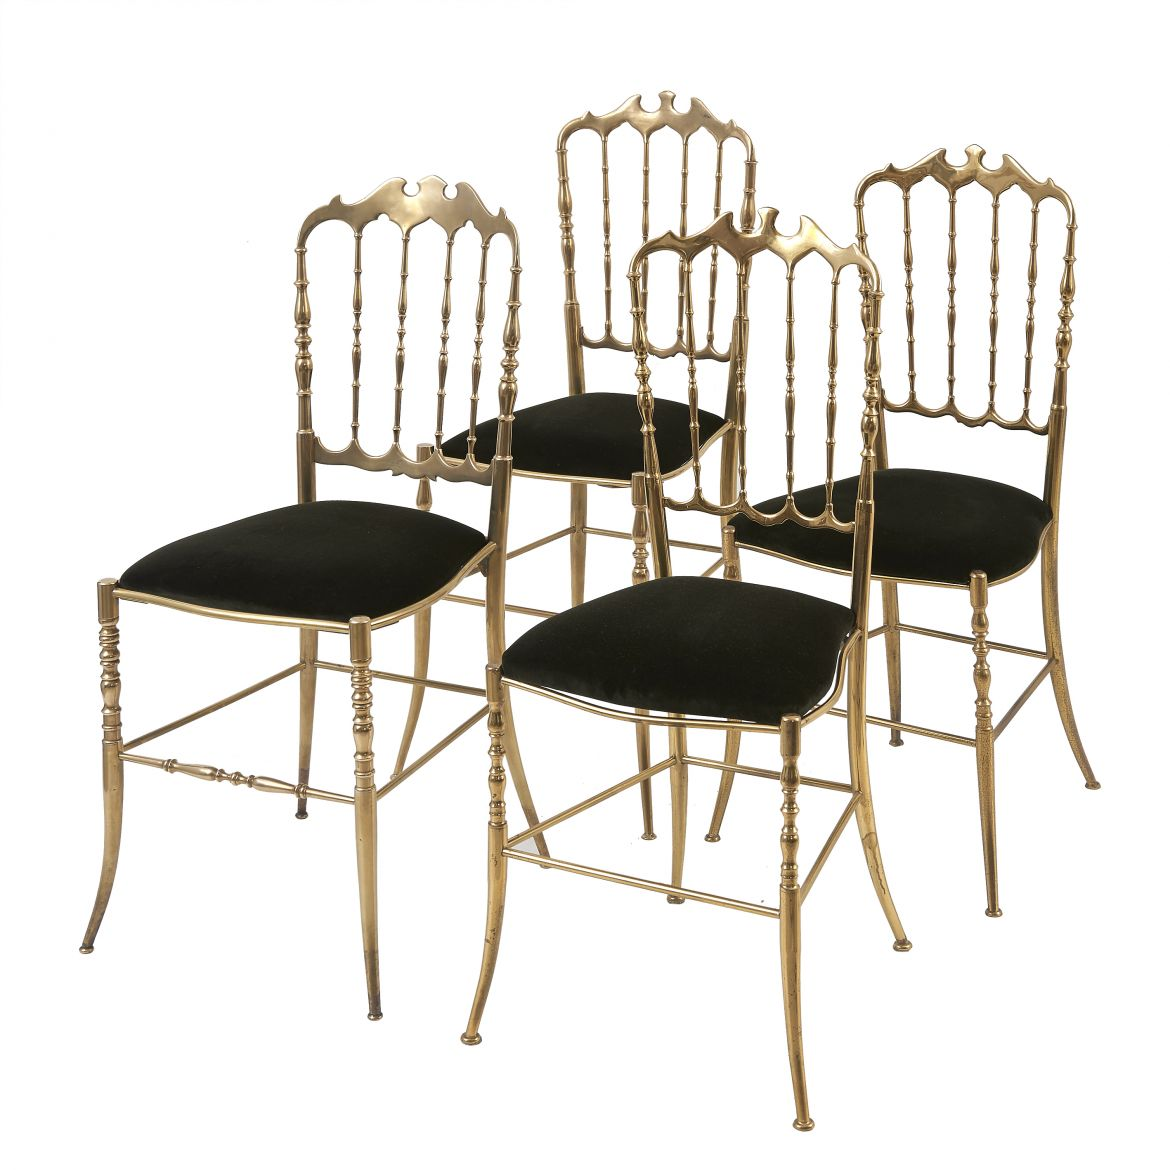 Matched Set Brass Chiavari Chairs